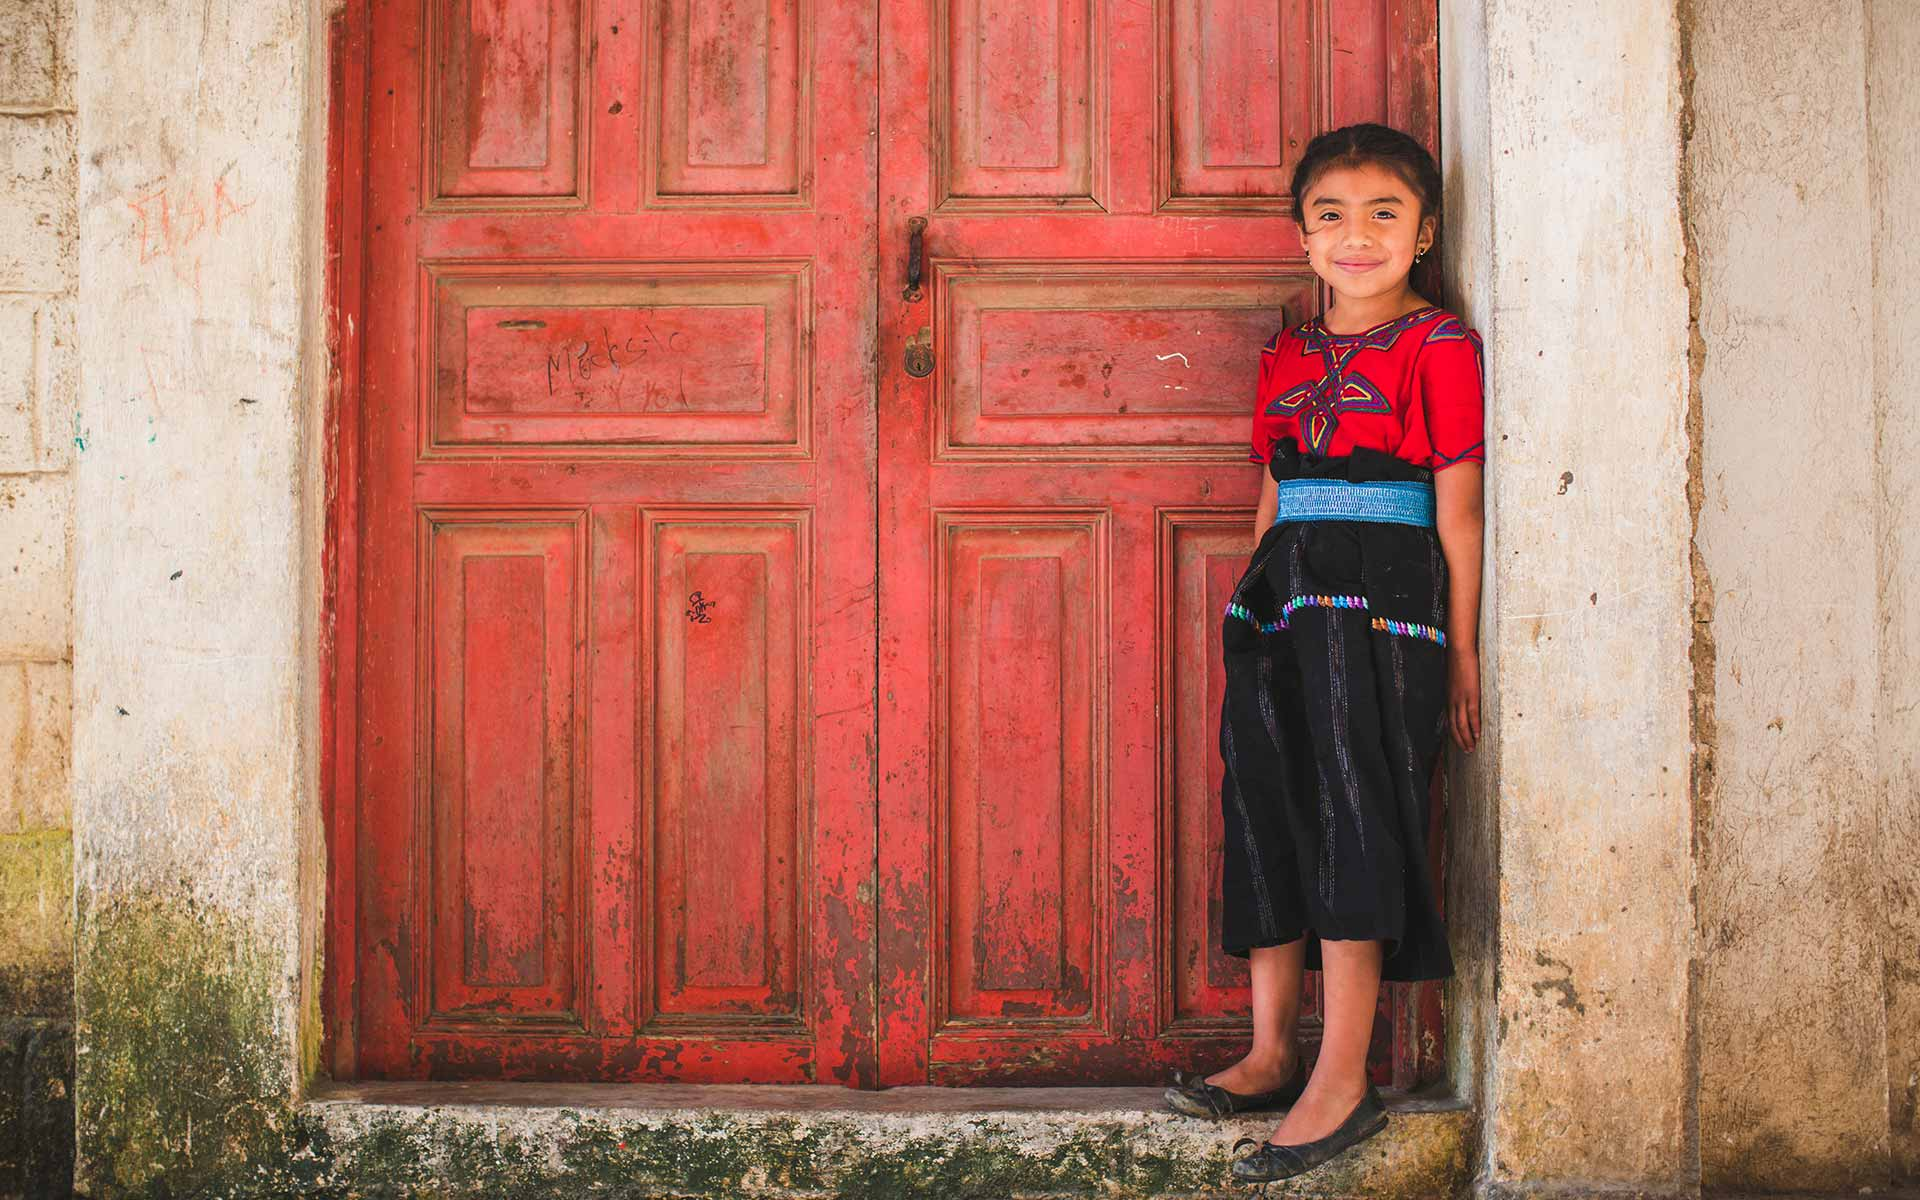 A young girl standing in front of a red door in Guatemala